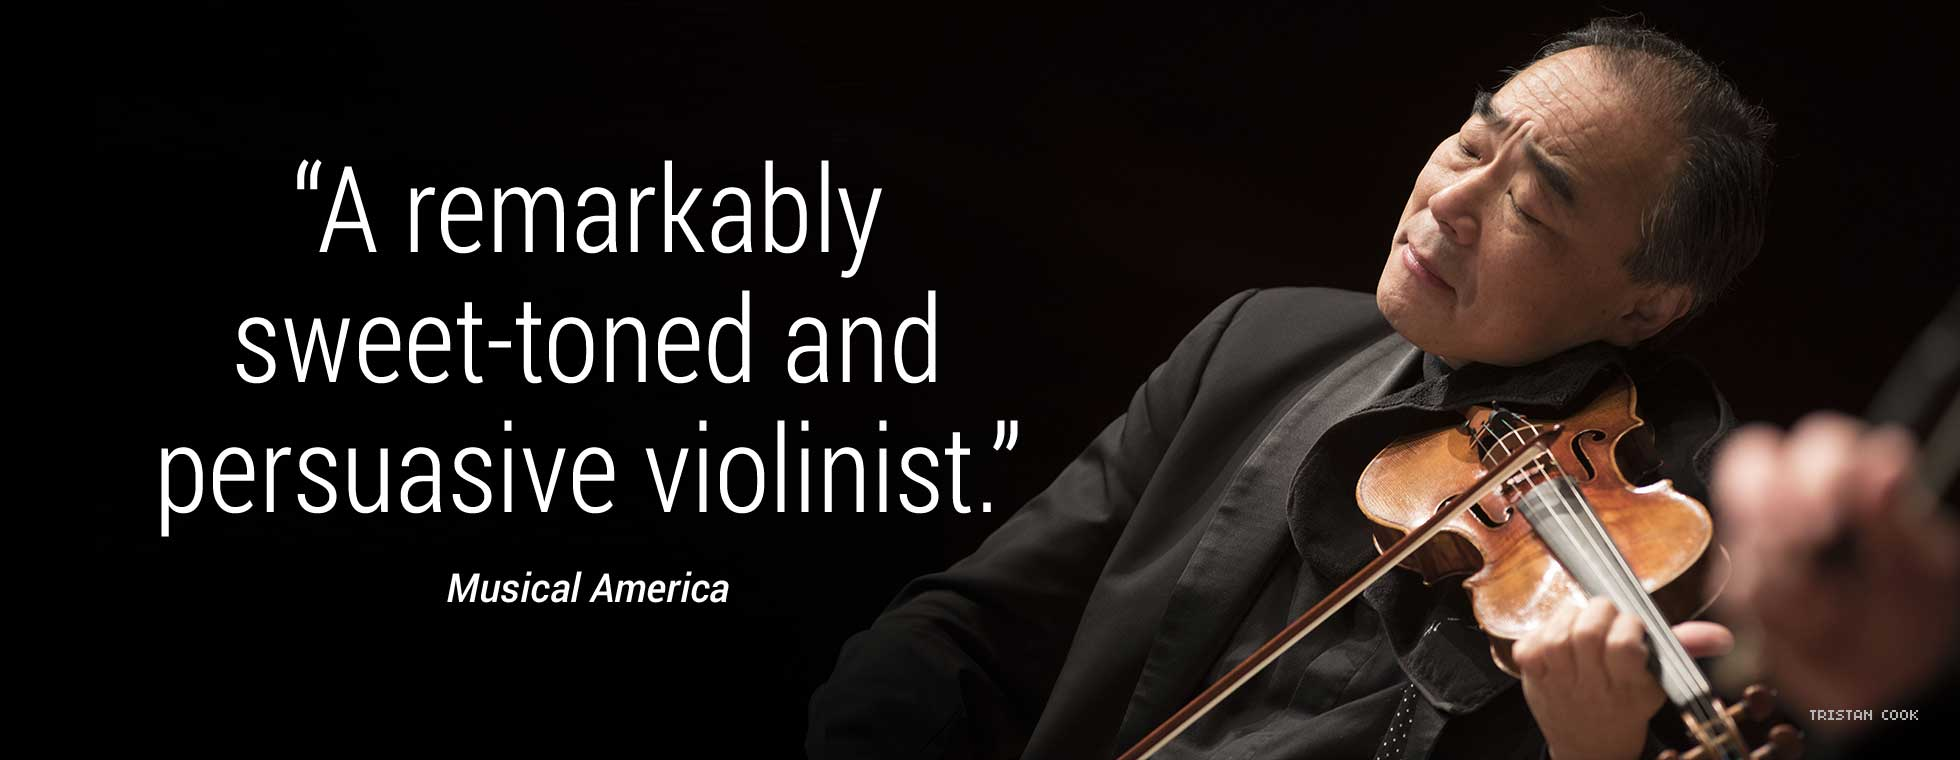 """Quote: """"A remarkably sweet-toned and persuasive violinist."""" - Musical America"""